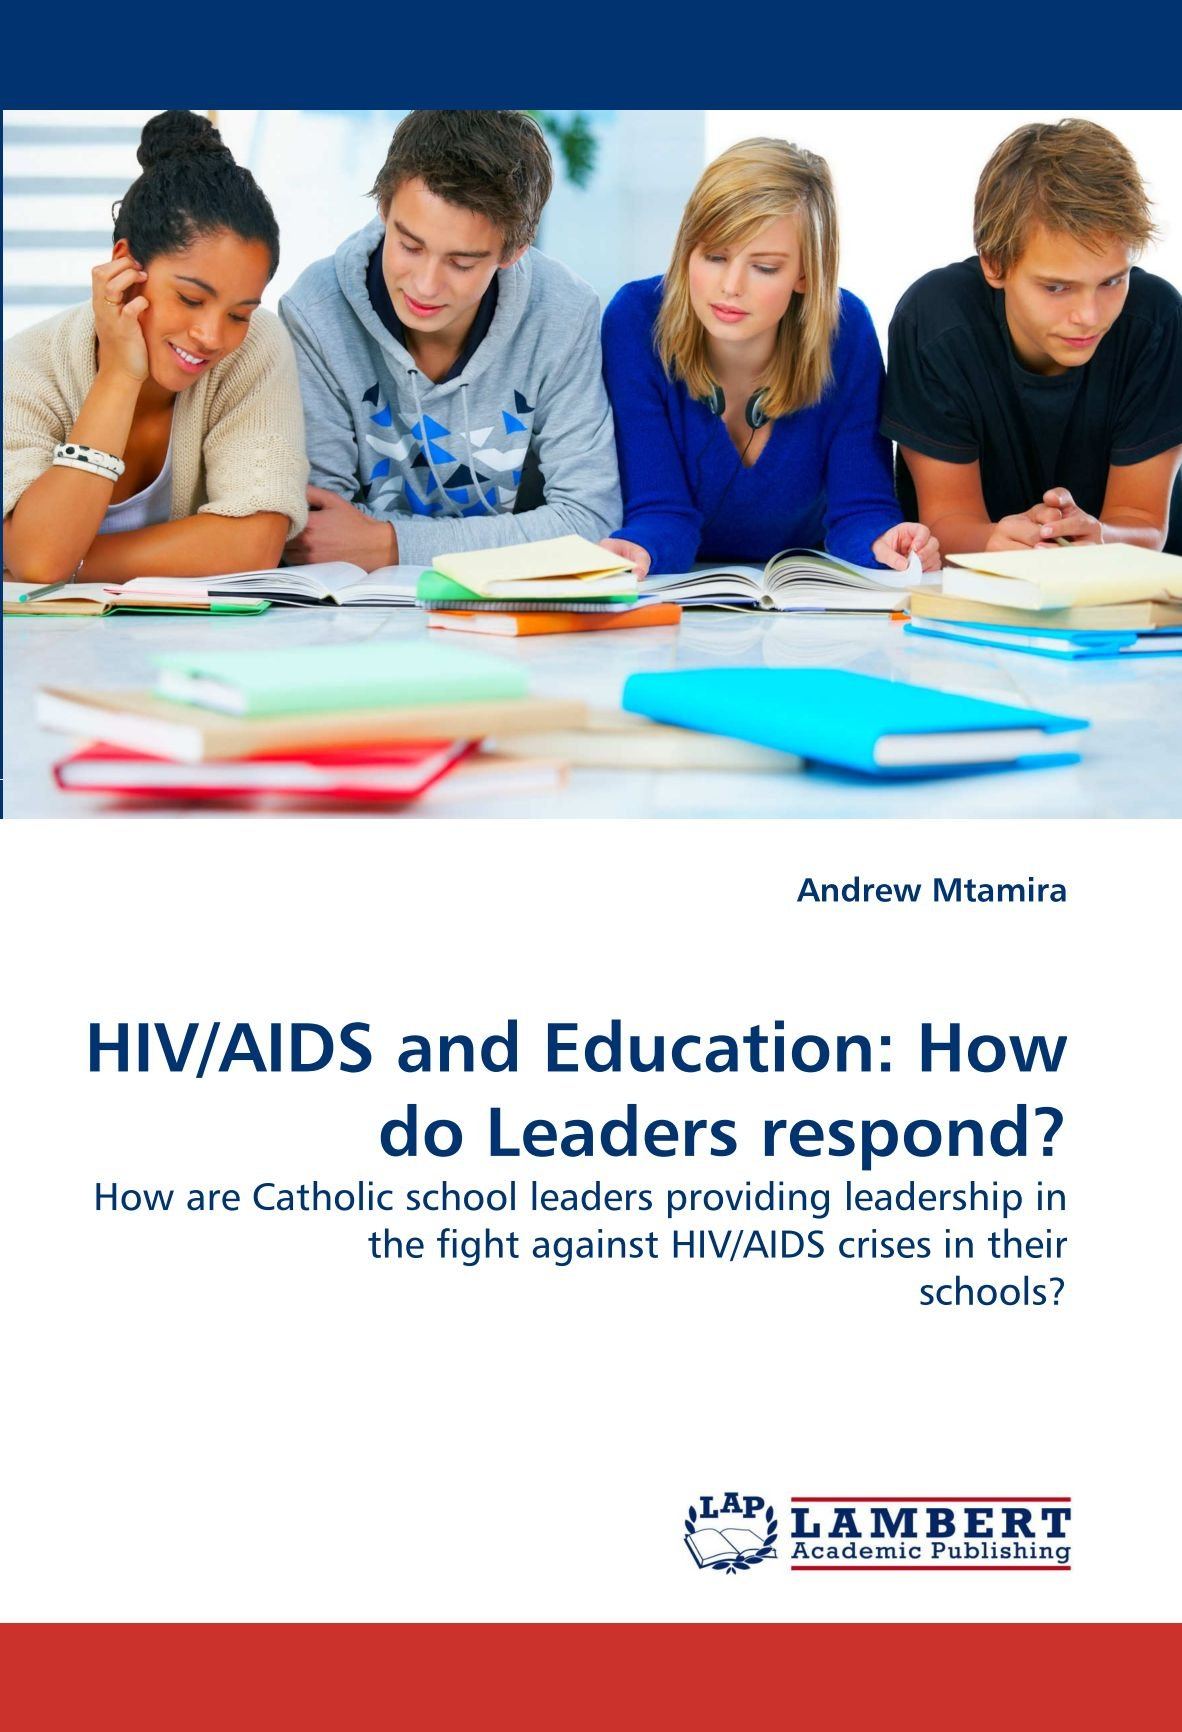 HIV/AIDS and Education: How do Leaders respond?: How are Catholic school leaders providing leadership in the fight against HIV/AIDS crises in their schools? ePub fb2 book